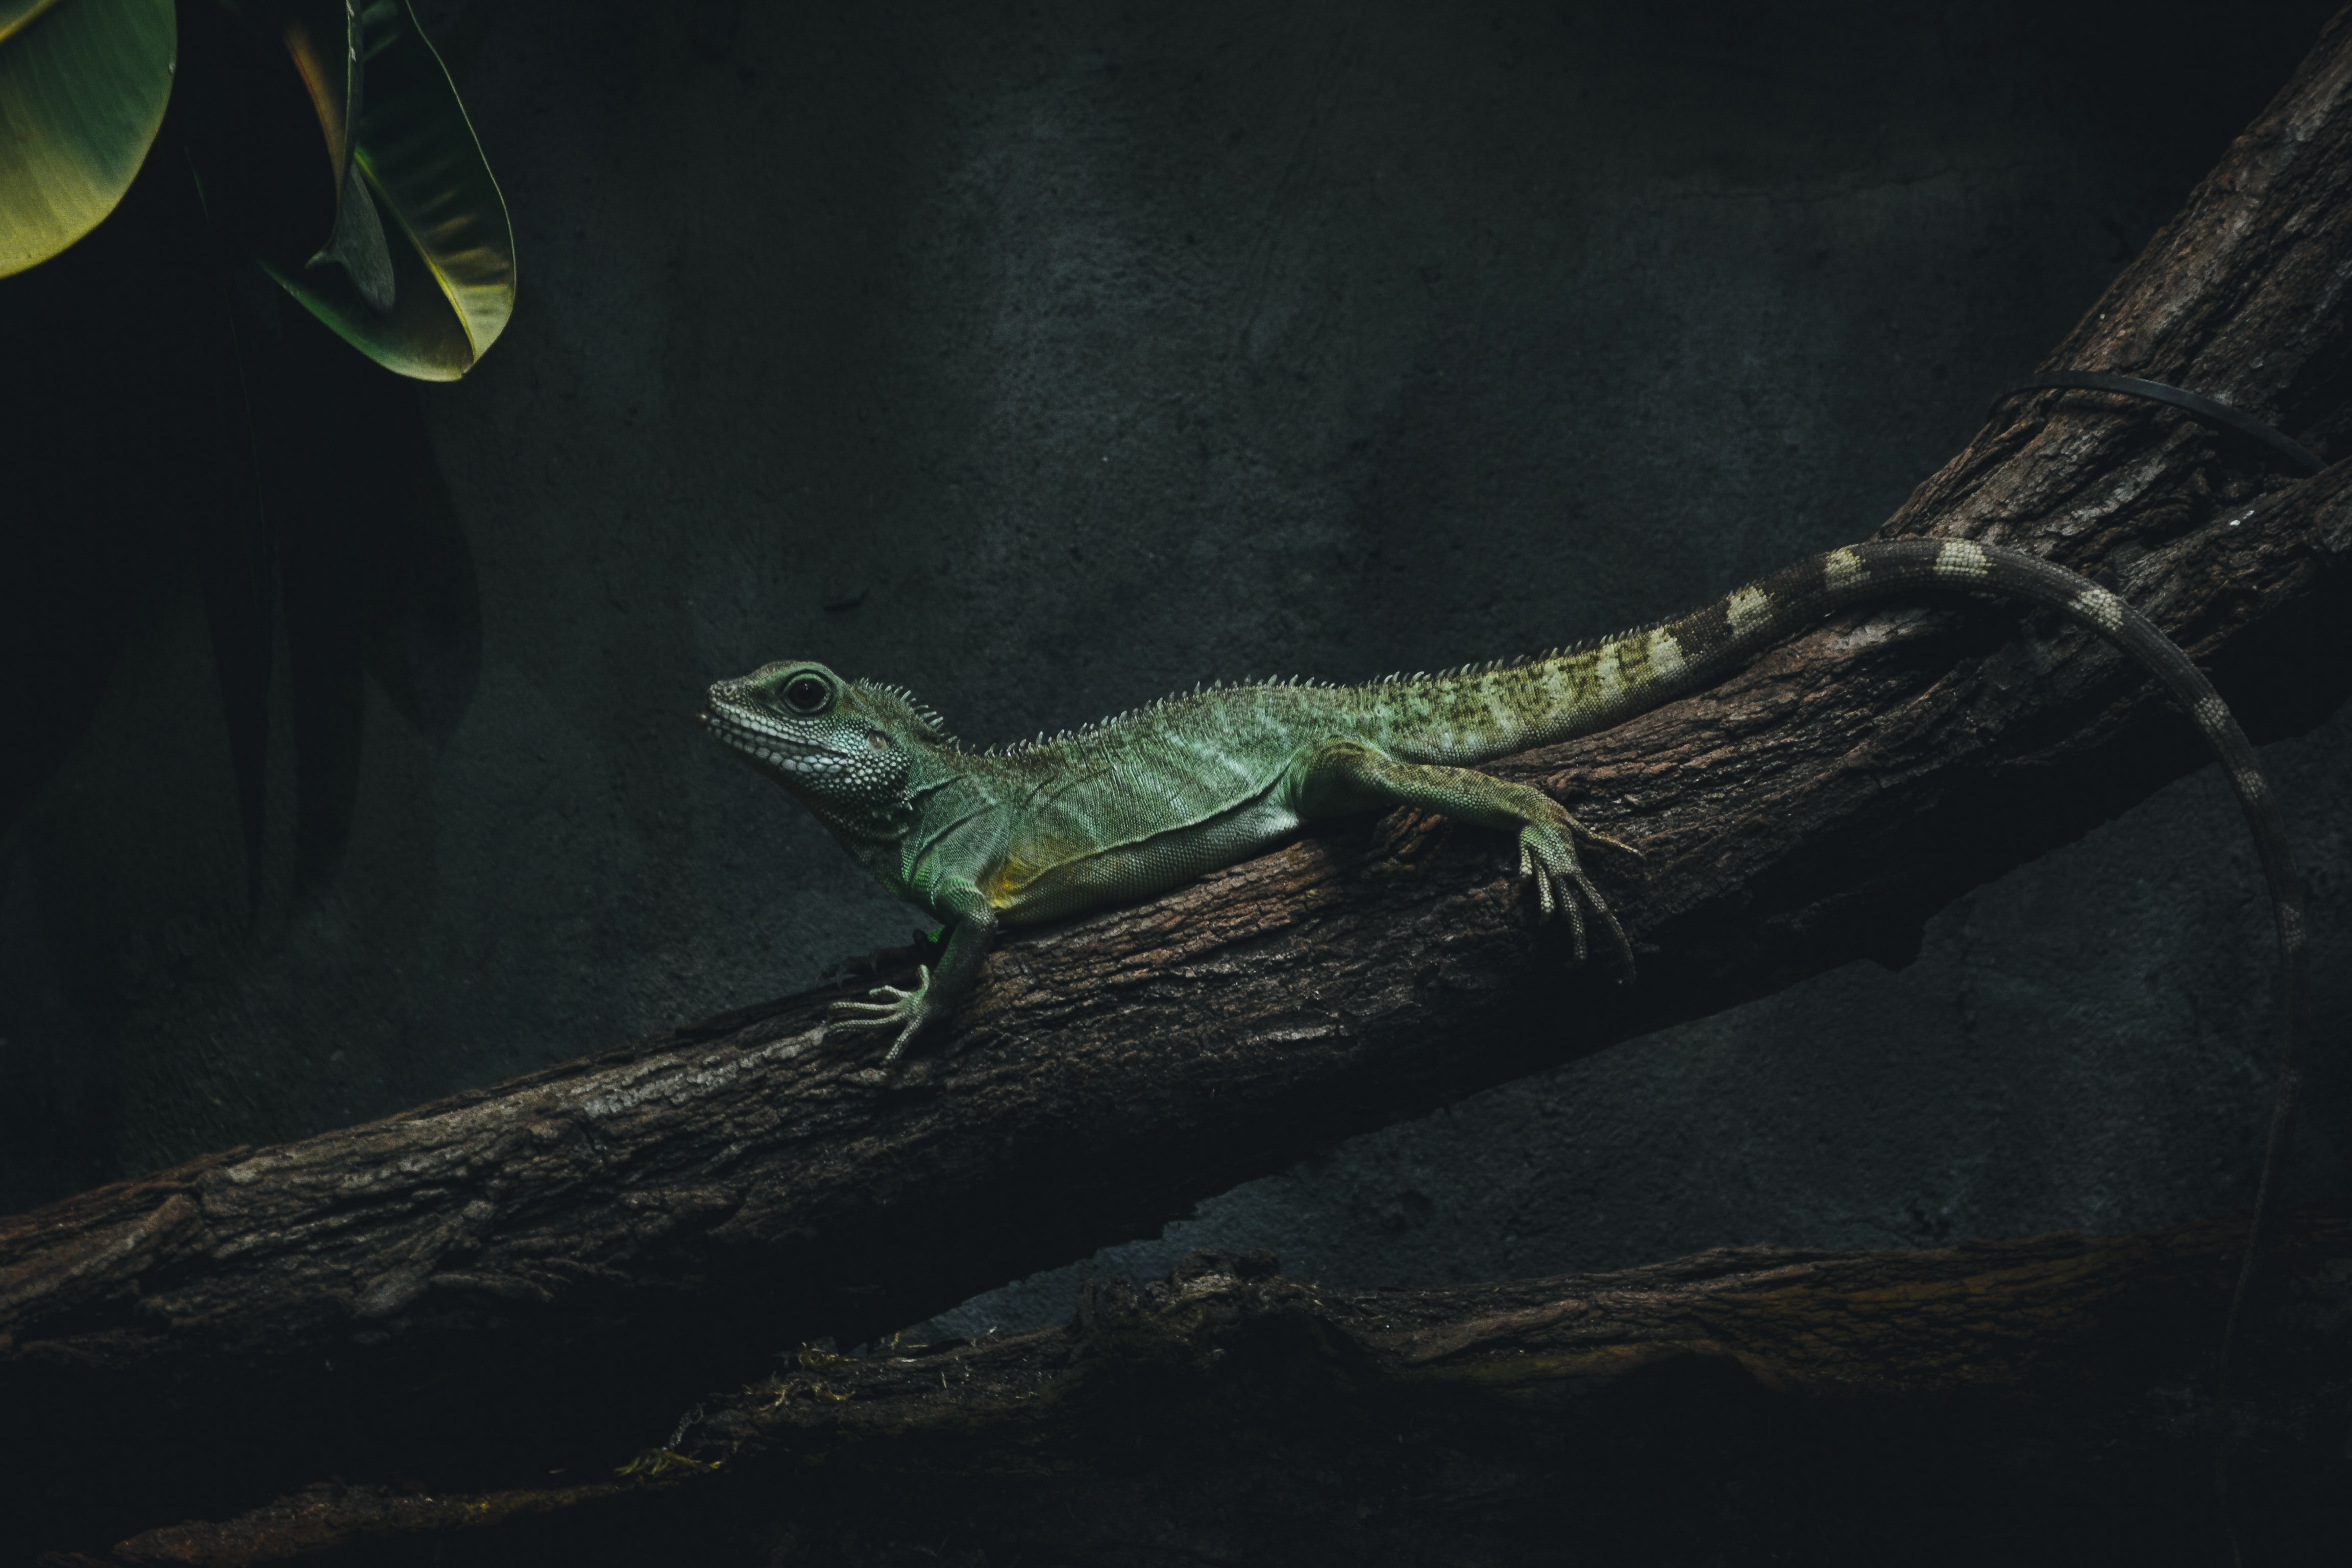 photo of lizard on tree branch